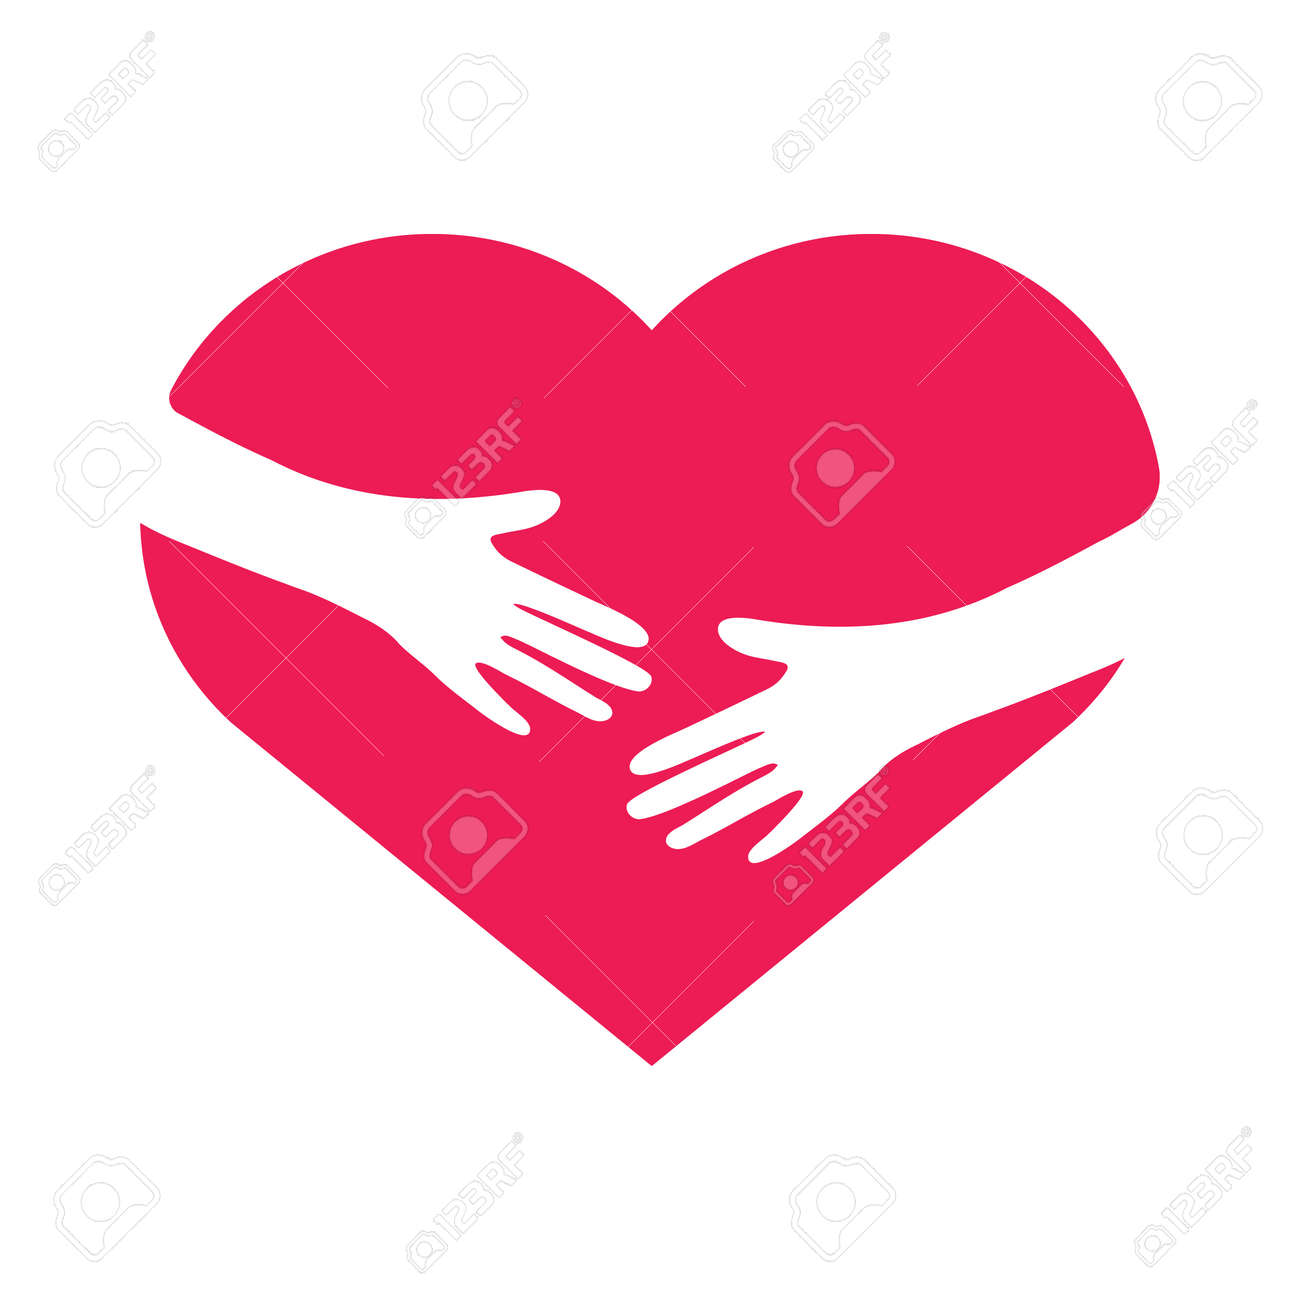 Hand embracing heart. Love yourself concept. Volunteer support flat sign. Vector illustration. - 169764555